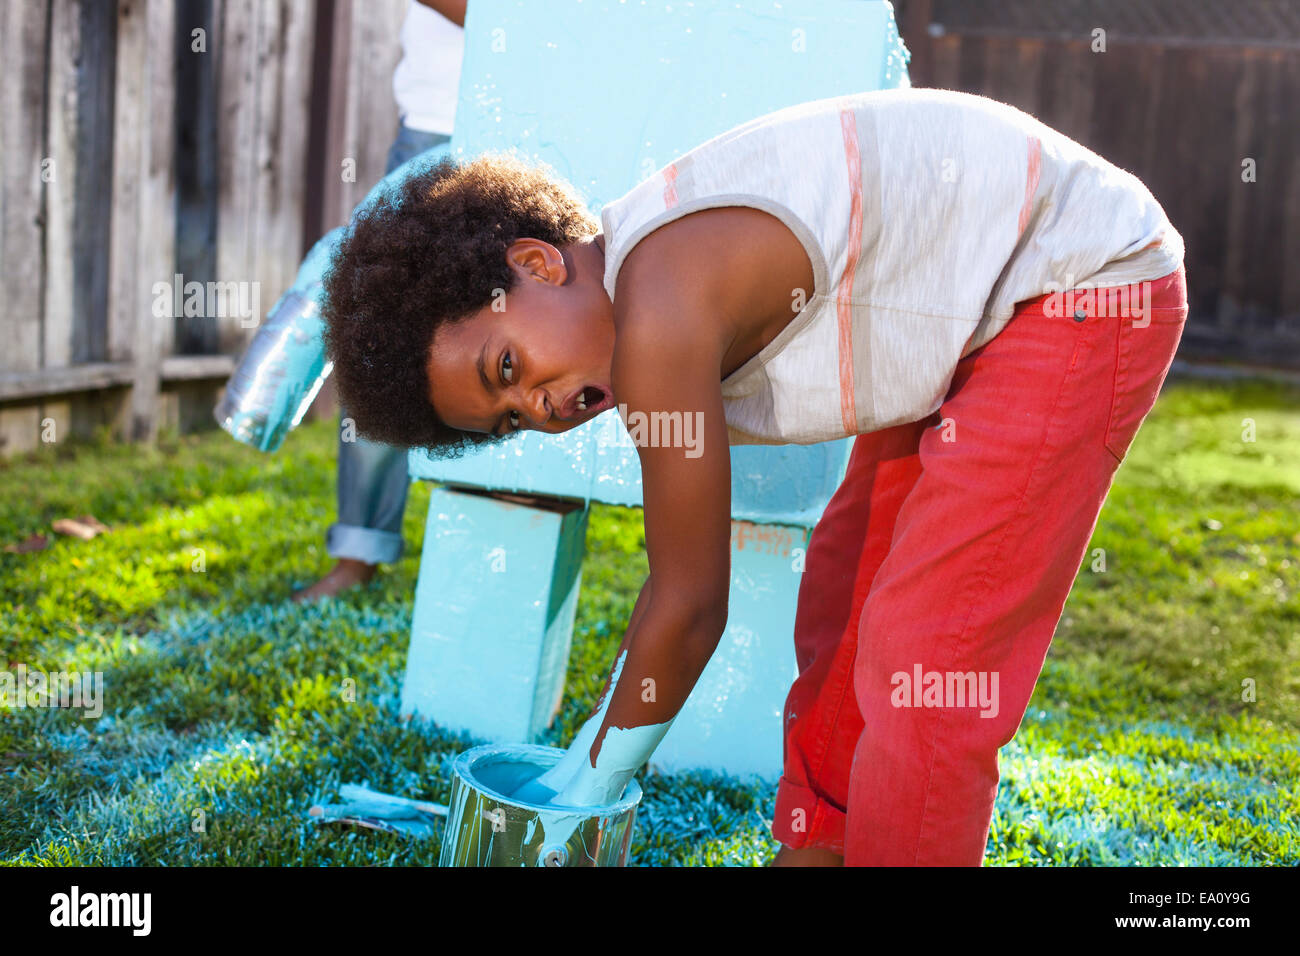 Boy dipping hands in blue paint in front of home made robot - Stock Image